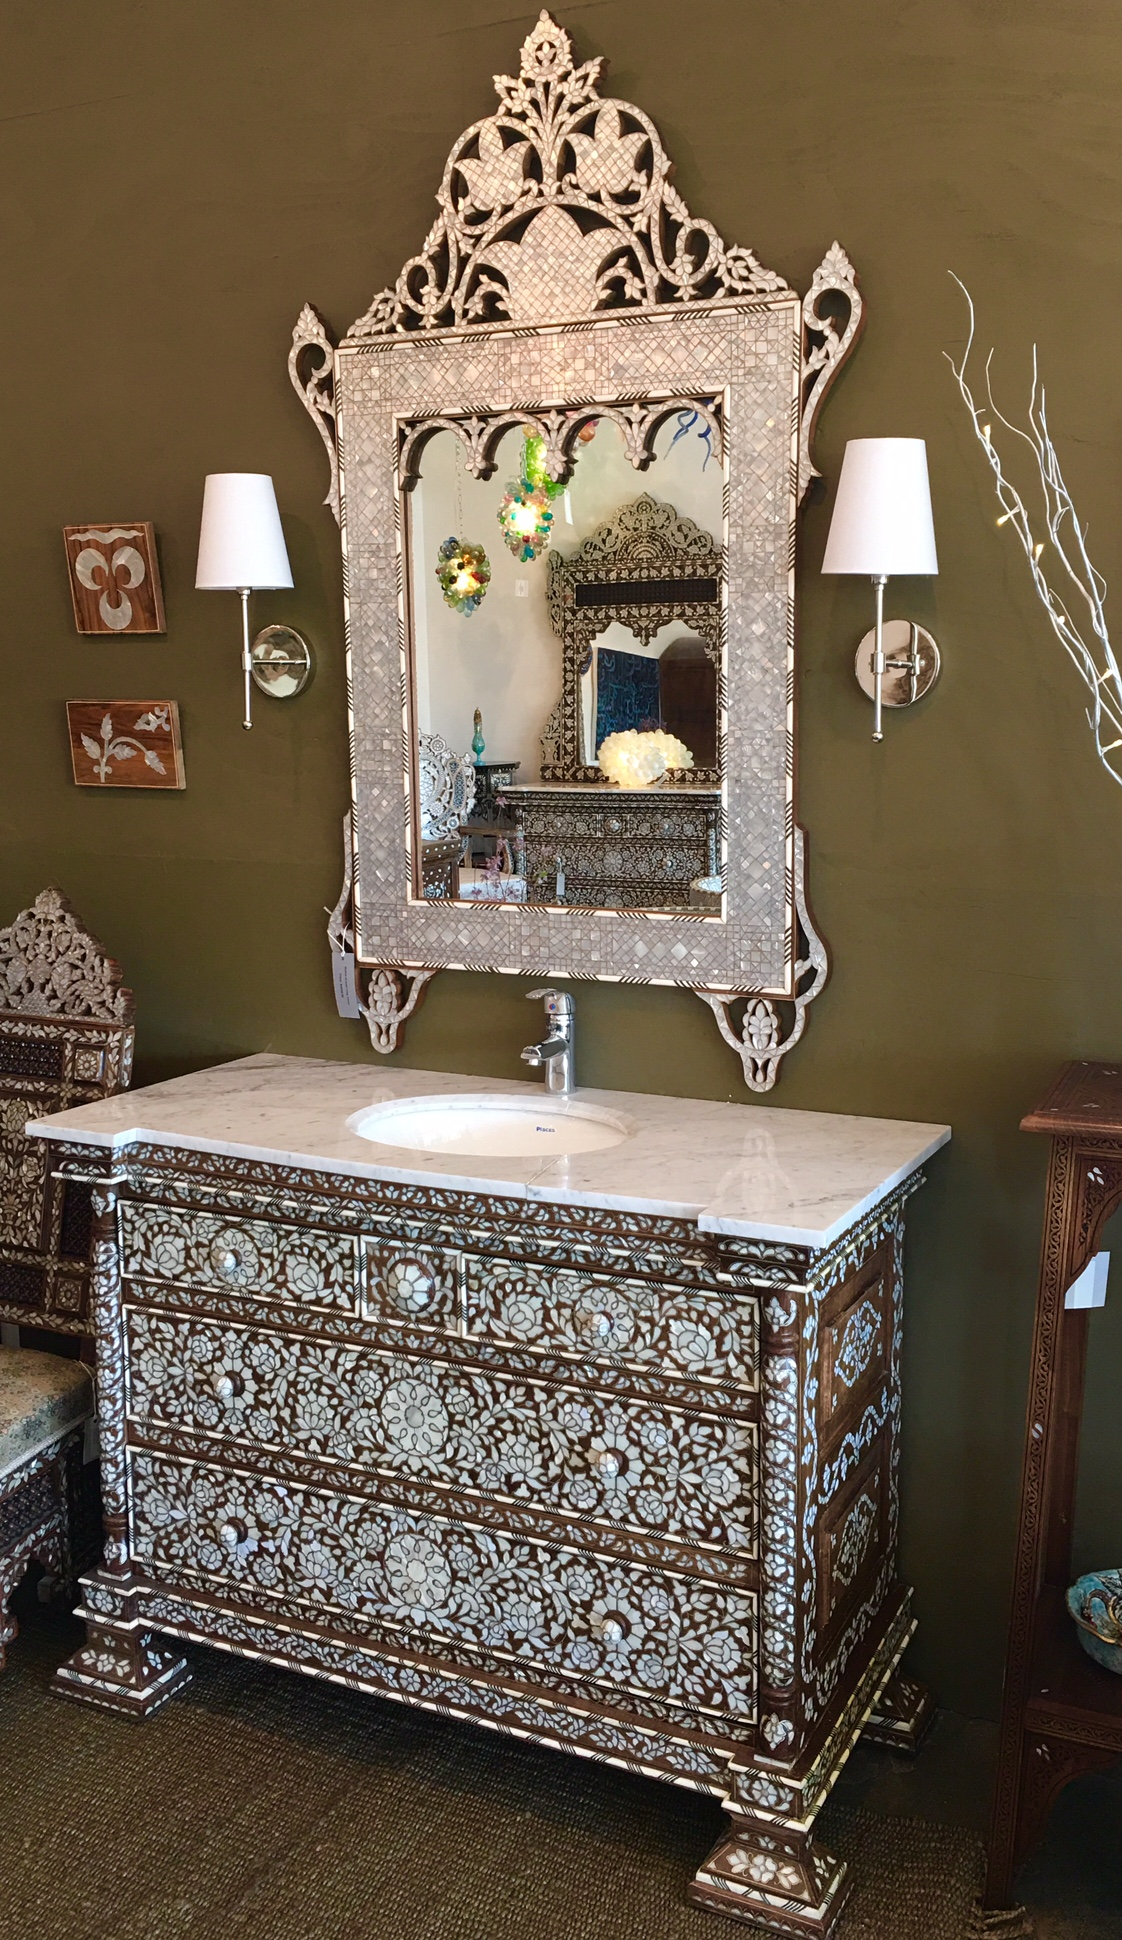 Mother of pearl vanity with mirror